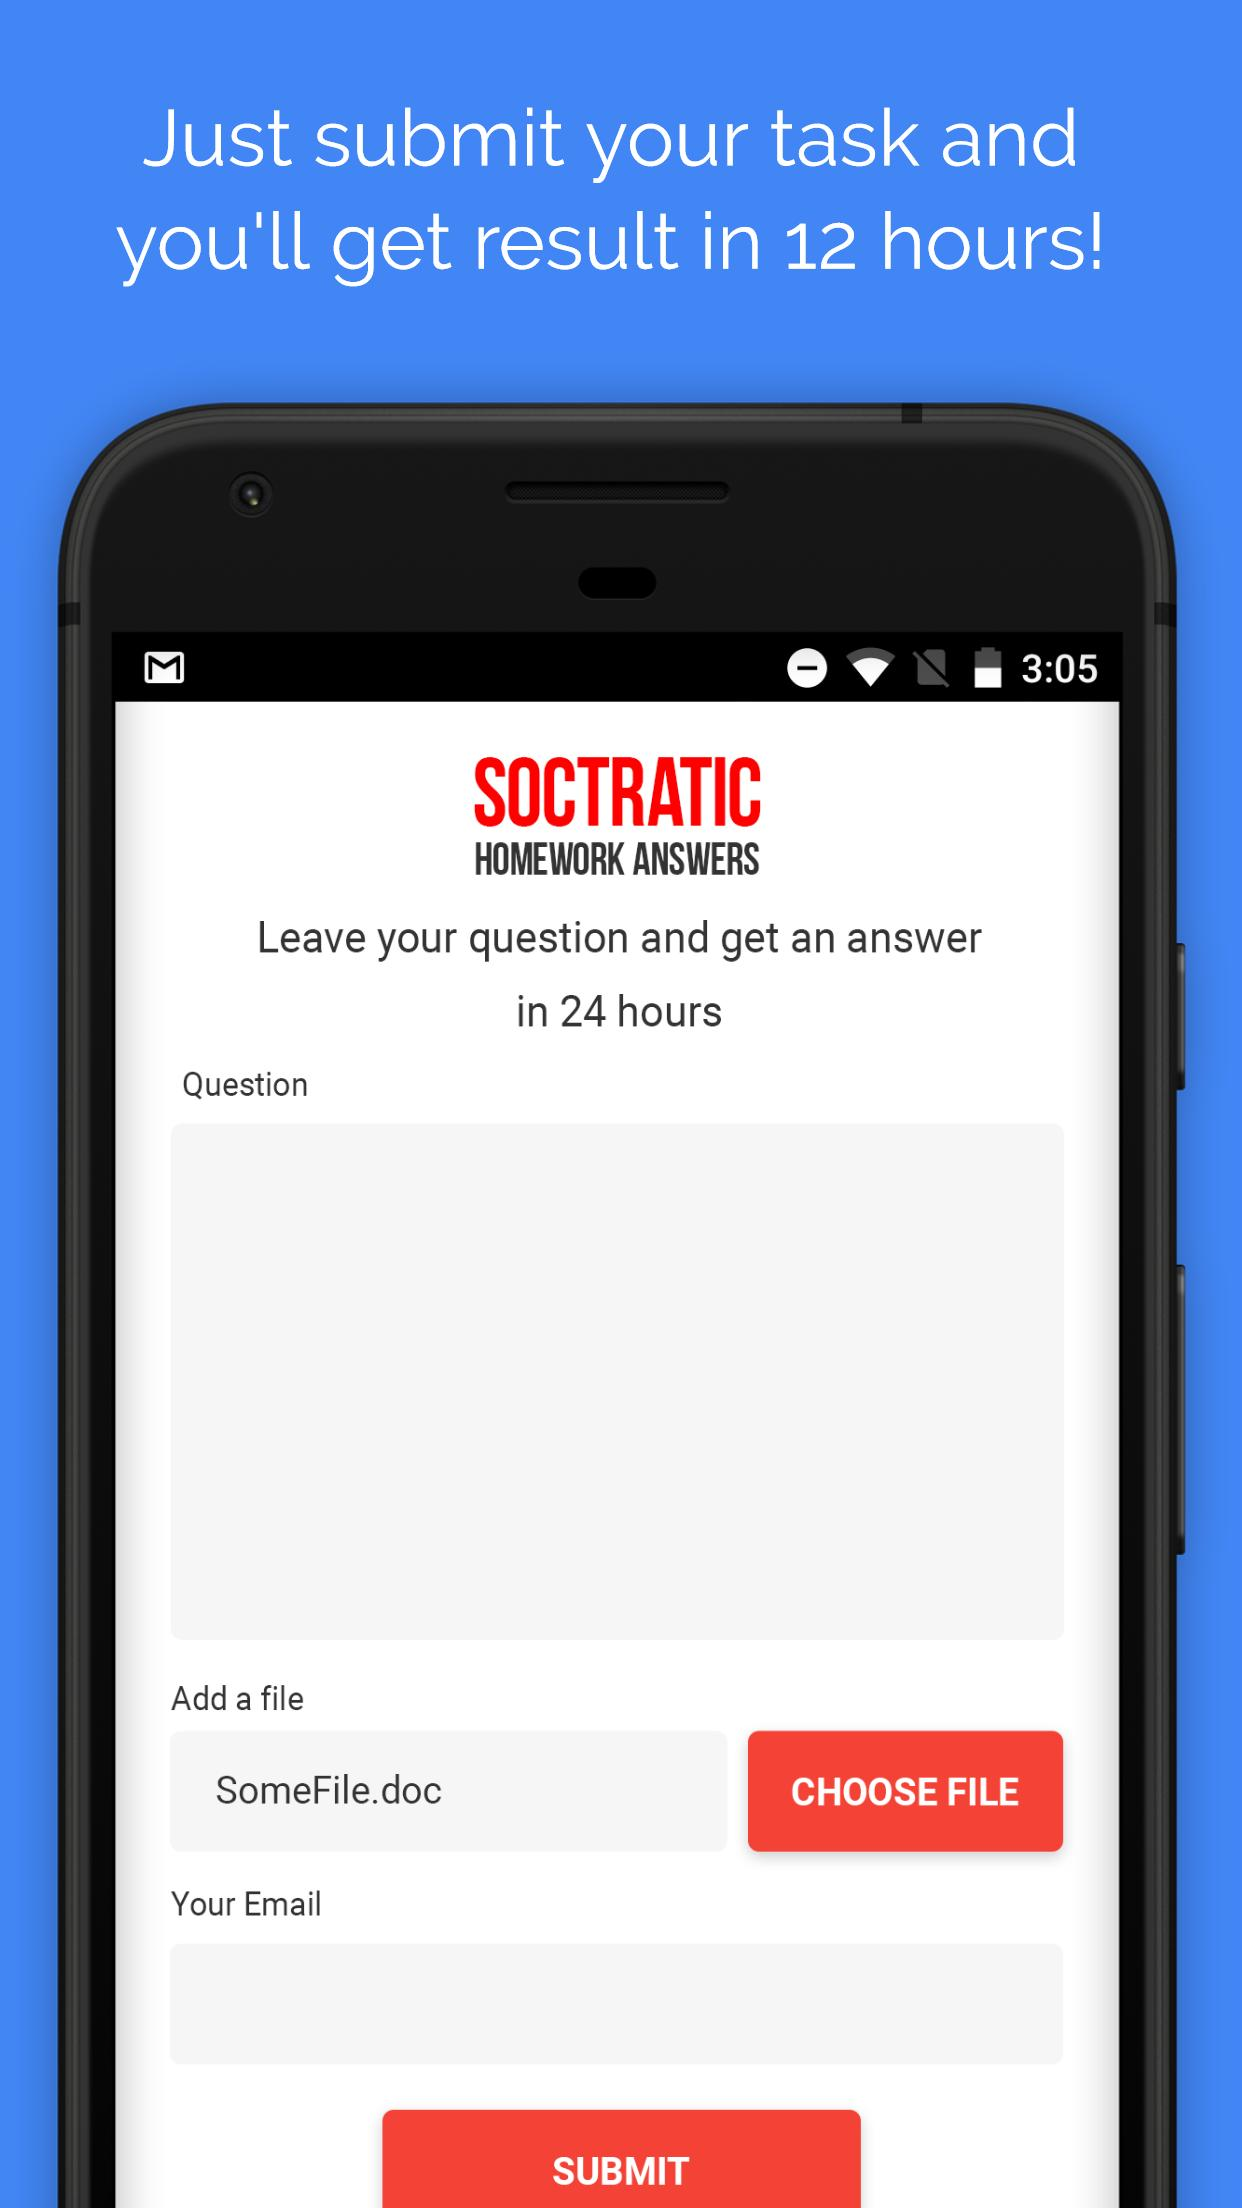 Socratic – Homework Answers for Android - APK Download